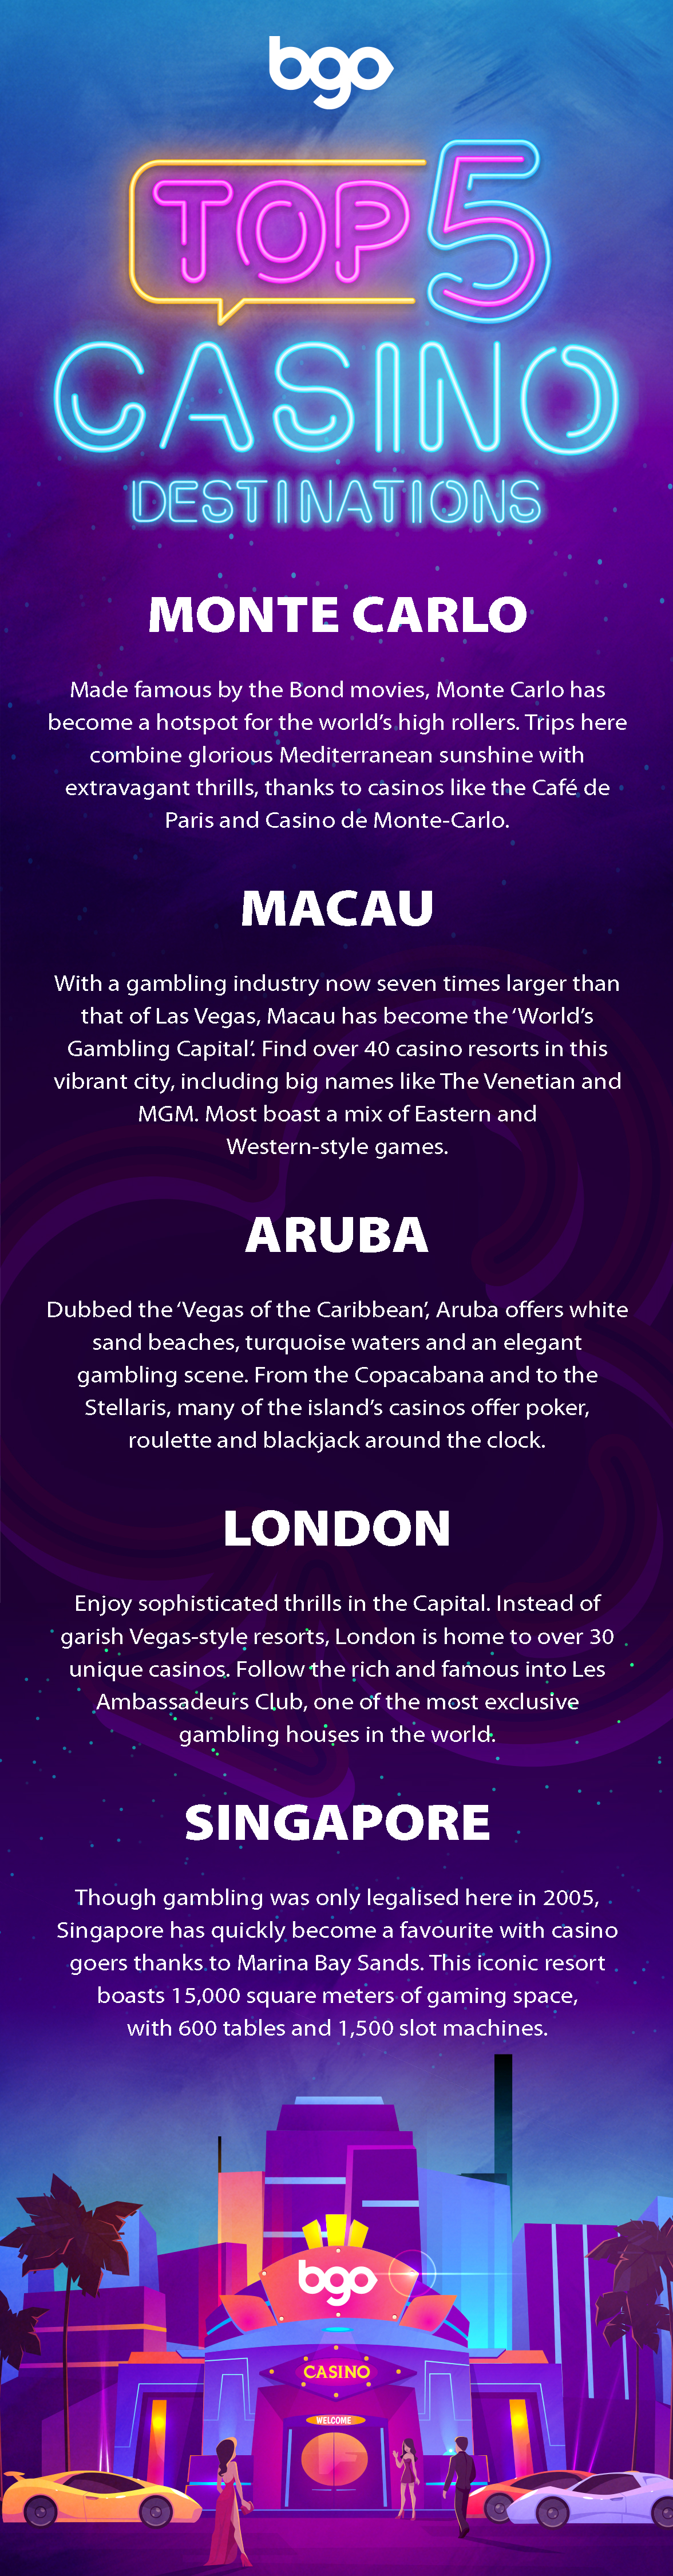 The World's Top Destinations for Casino Holidays